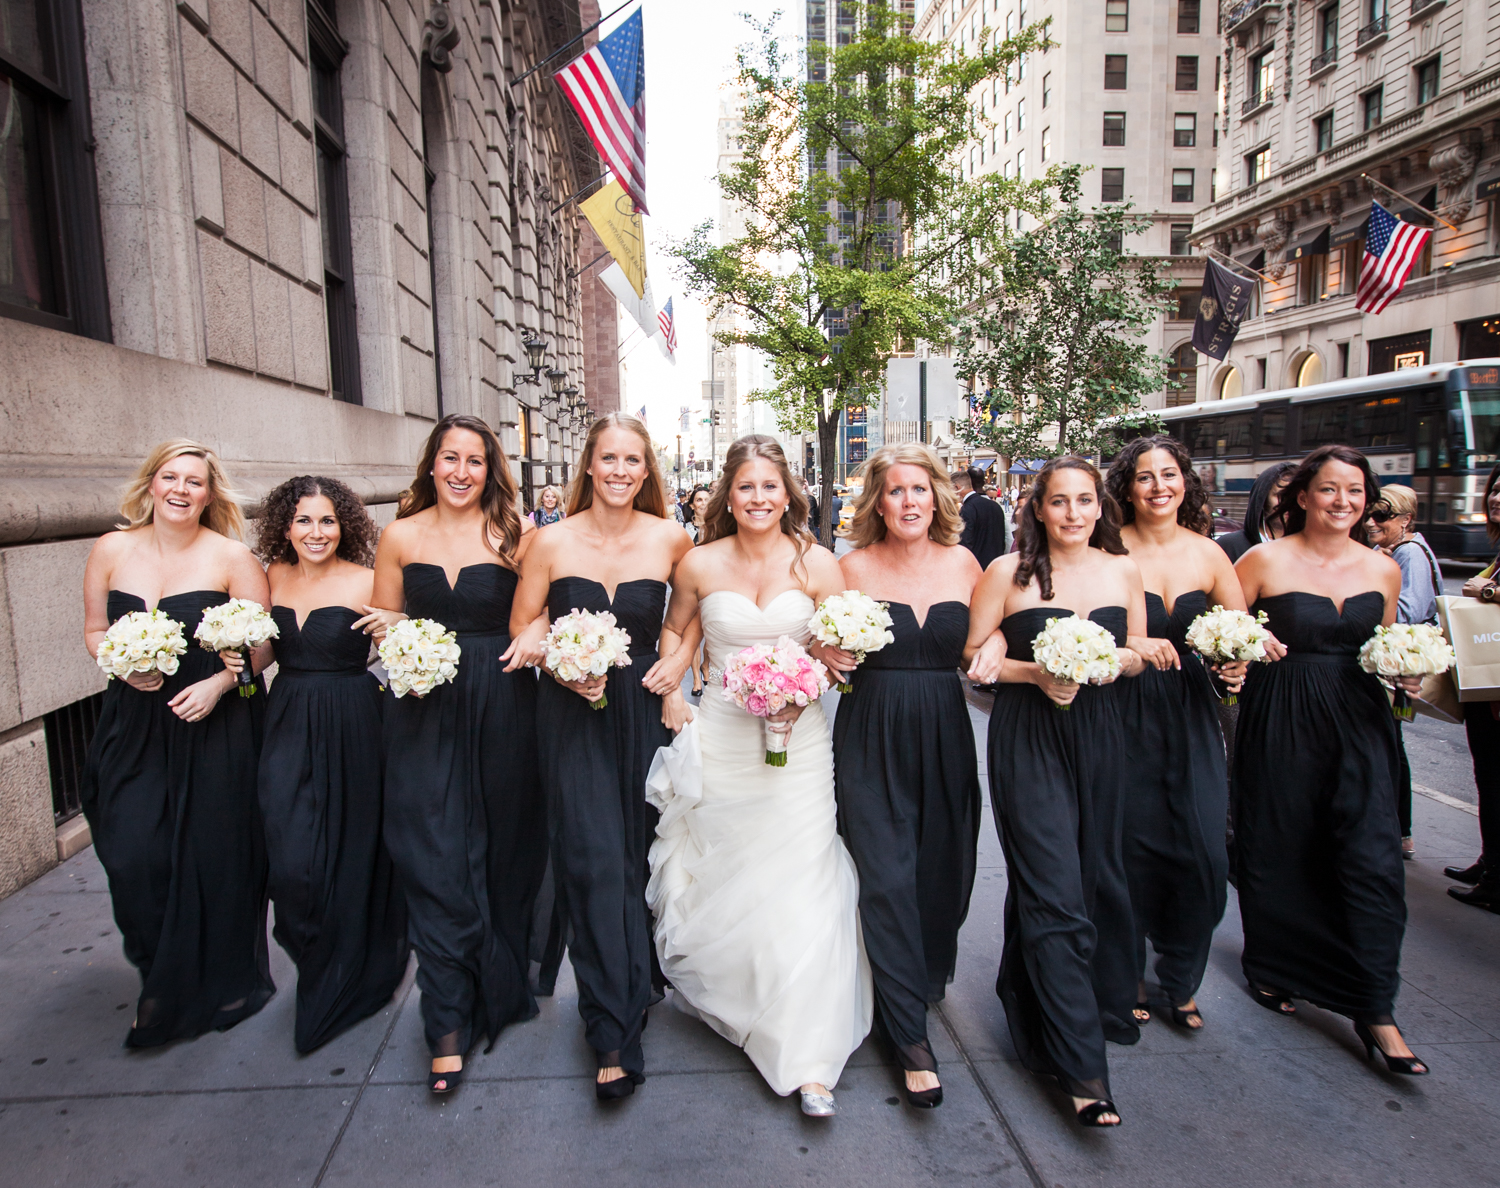 Bride and bridesmaids marching down Fifth Avenue before a University Club wedding